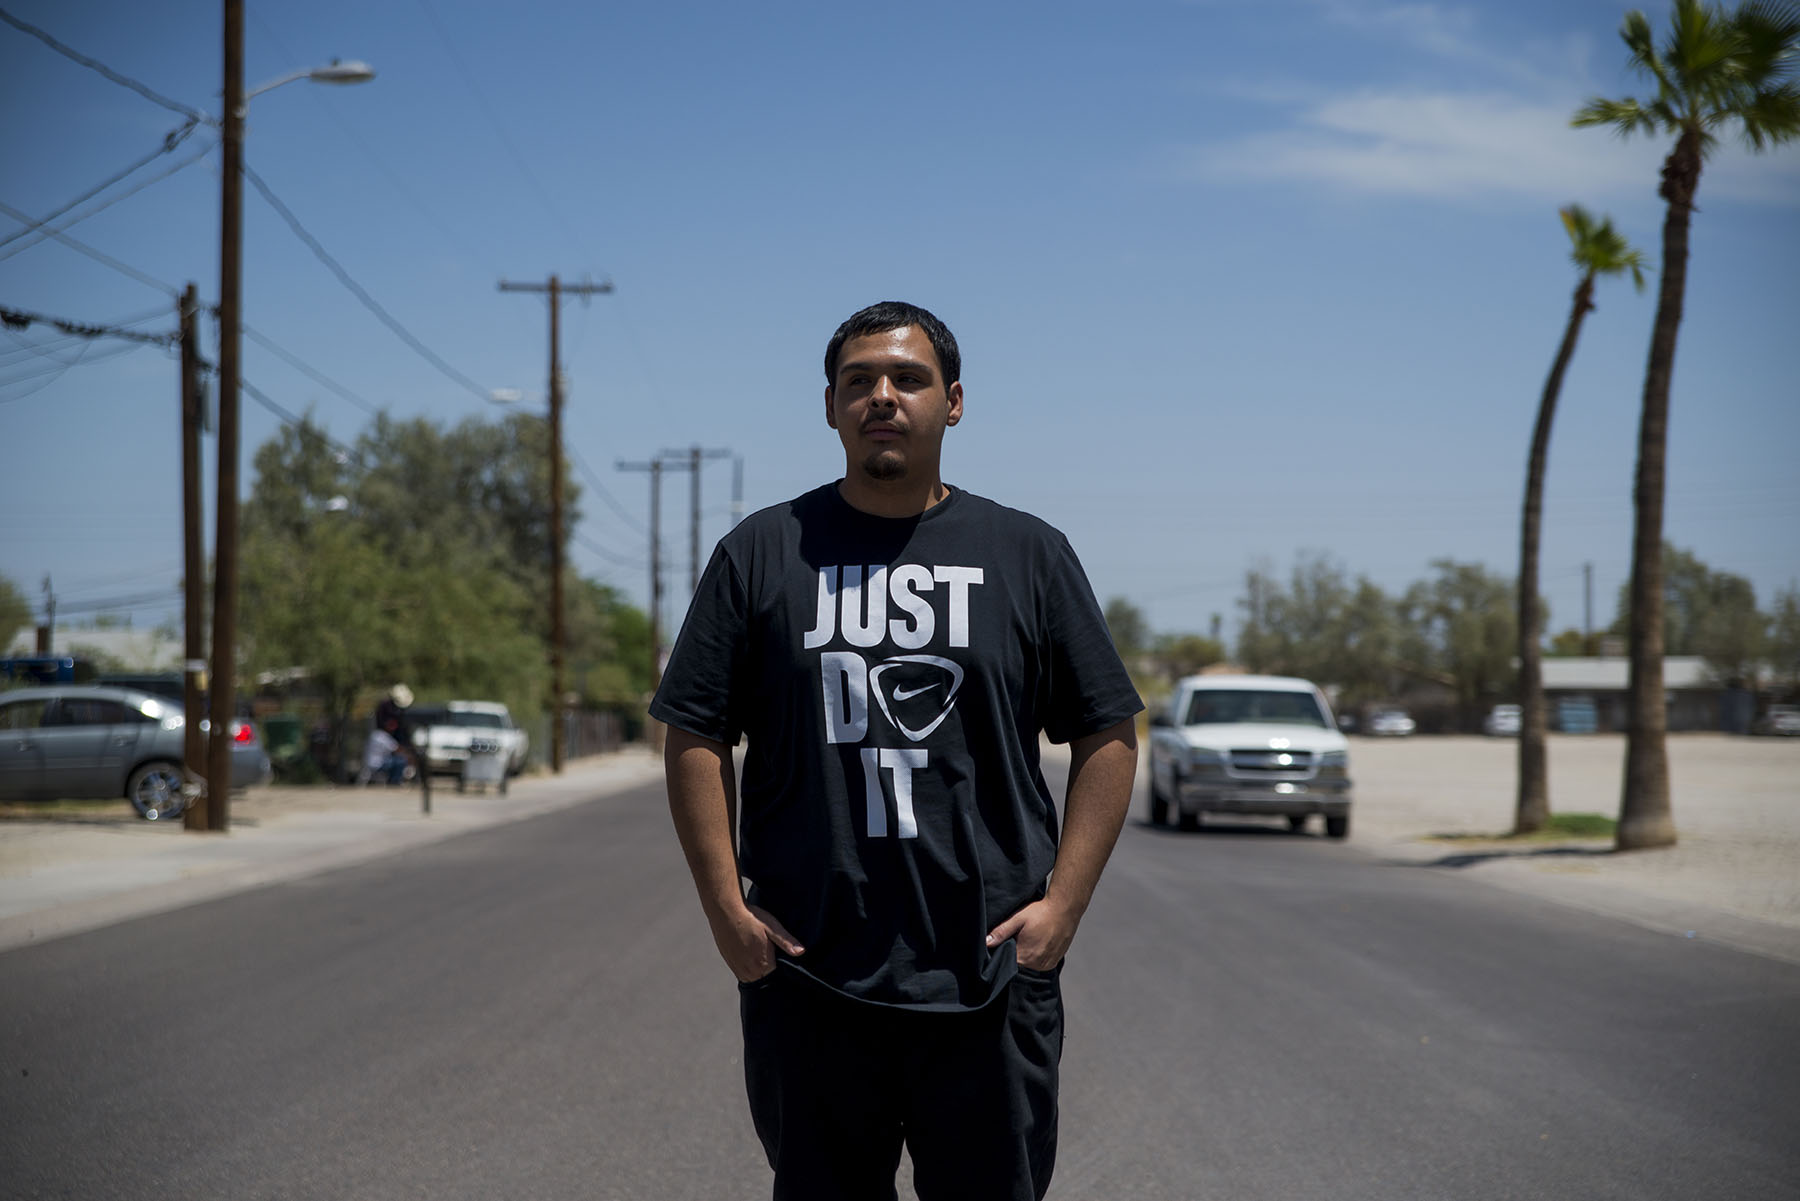 David Castorena, 24, of Chandler, Arizona, stands in the street of a small, largely-Latino community where he attends church. Castorena does not plan to vote in the November election because he thinks Donald Trump will win either way. (Roman Knertser/News21)